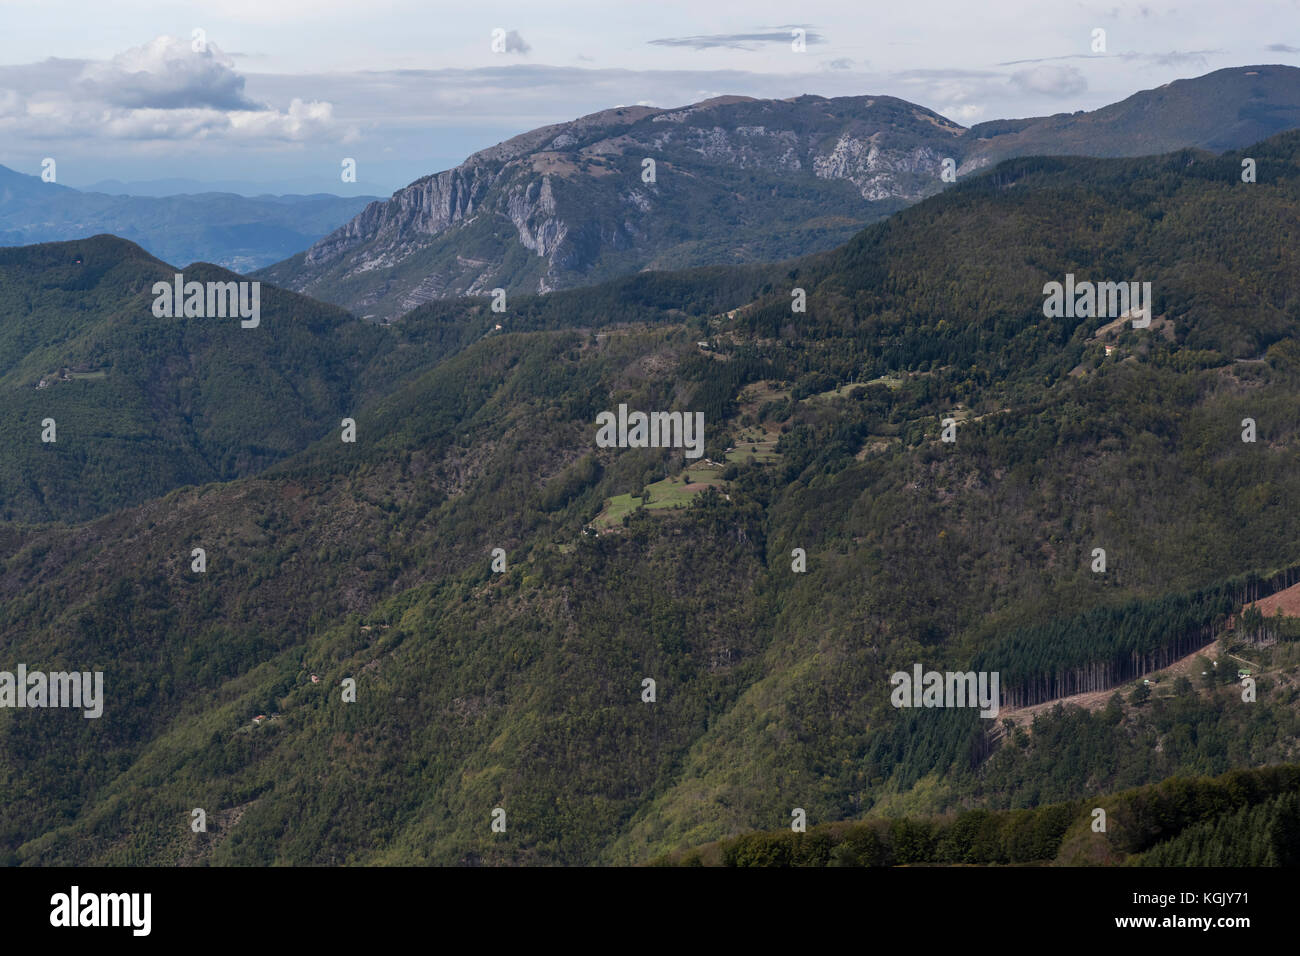 The hilltop village of San Pellegrino in Alpe, in the province of Lucca, Italy Stock Photo